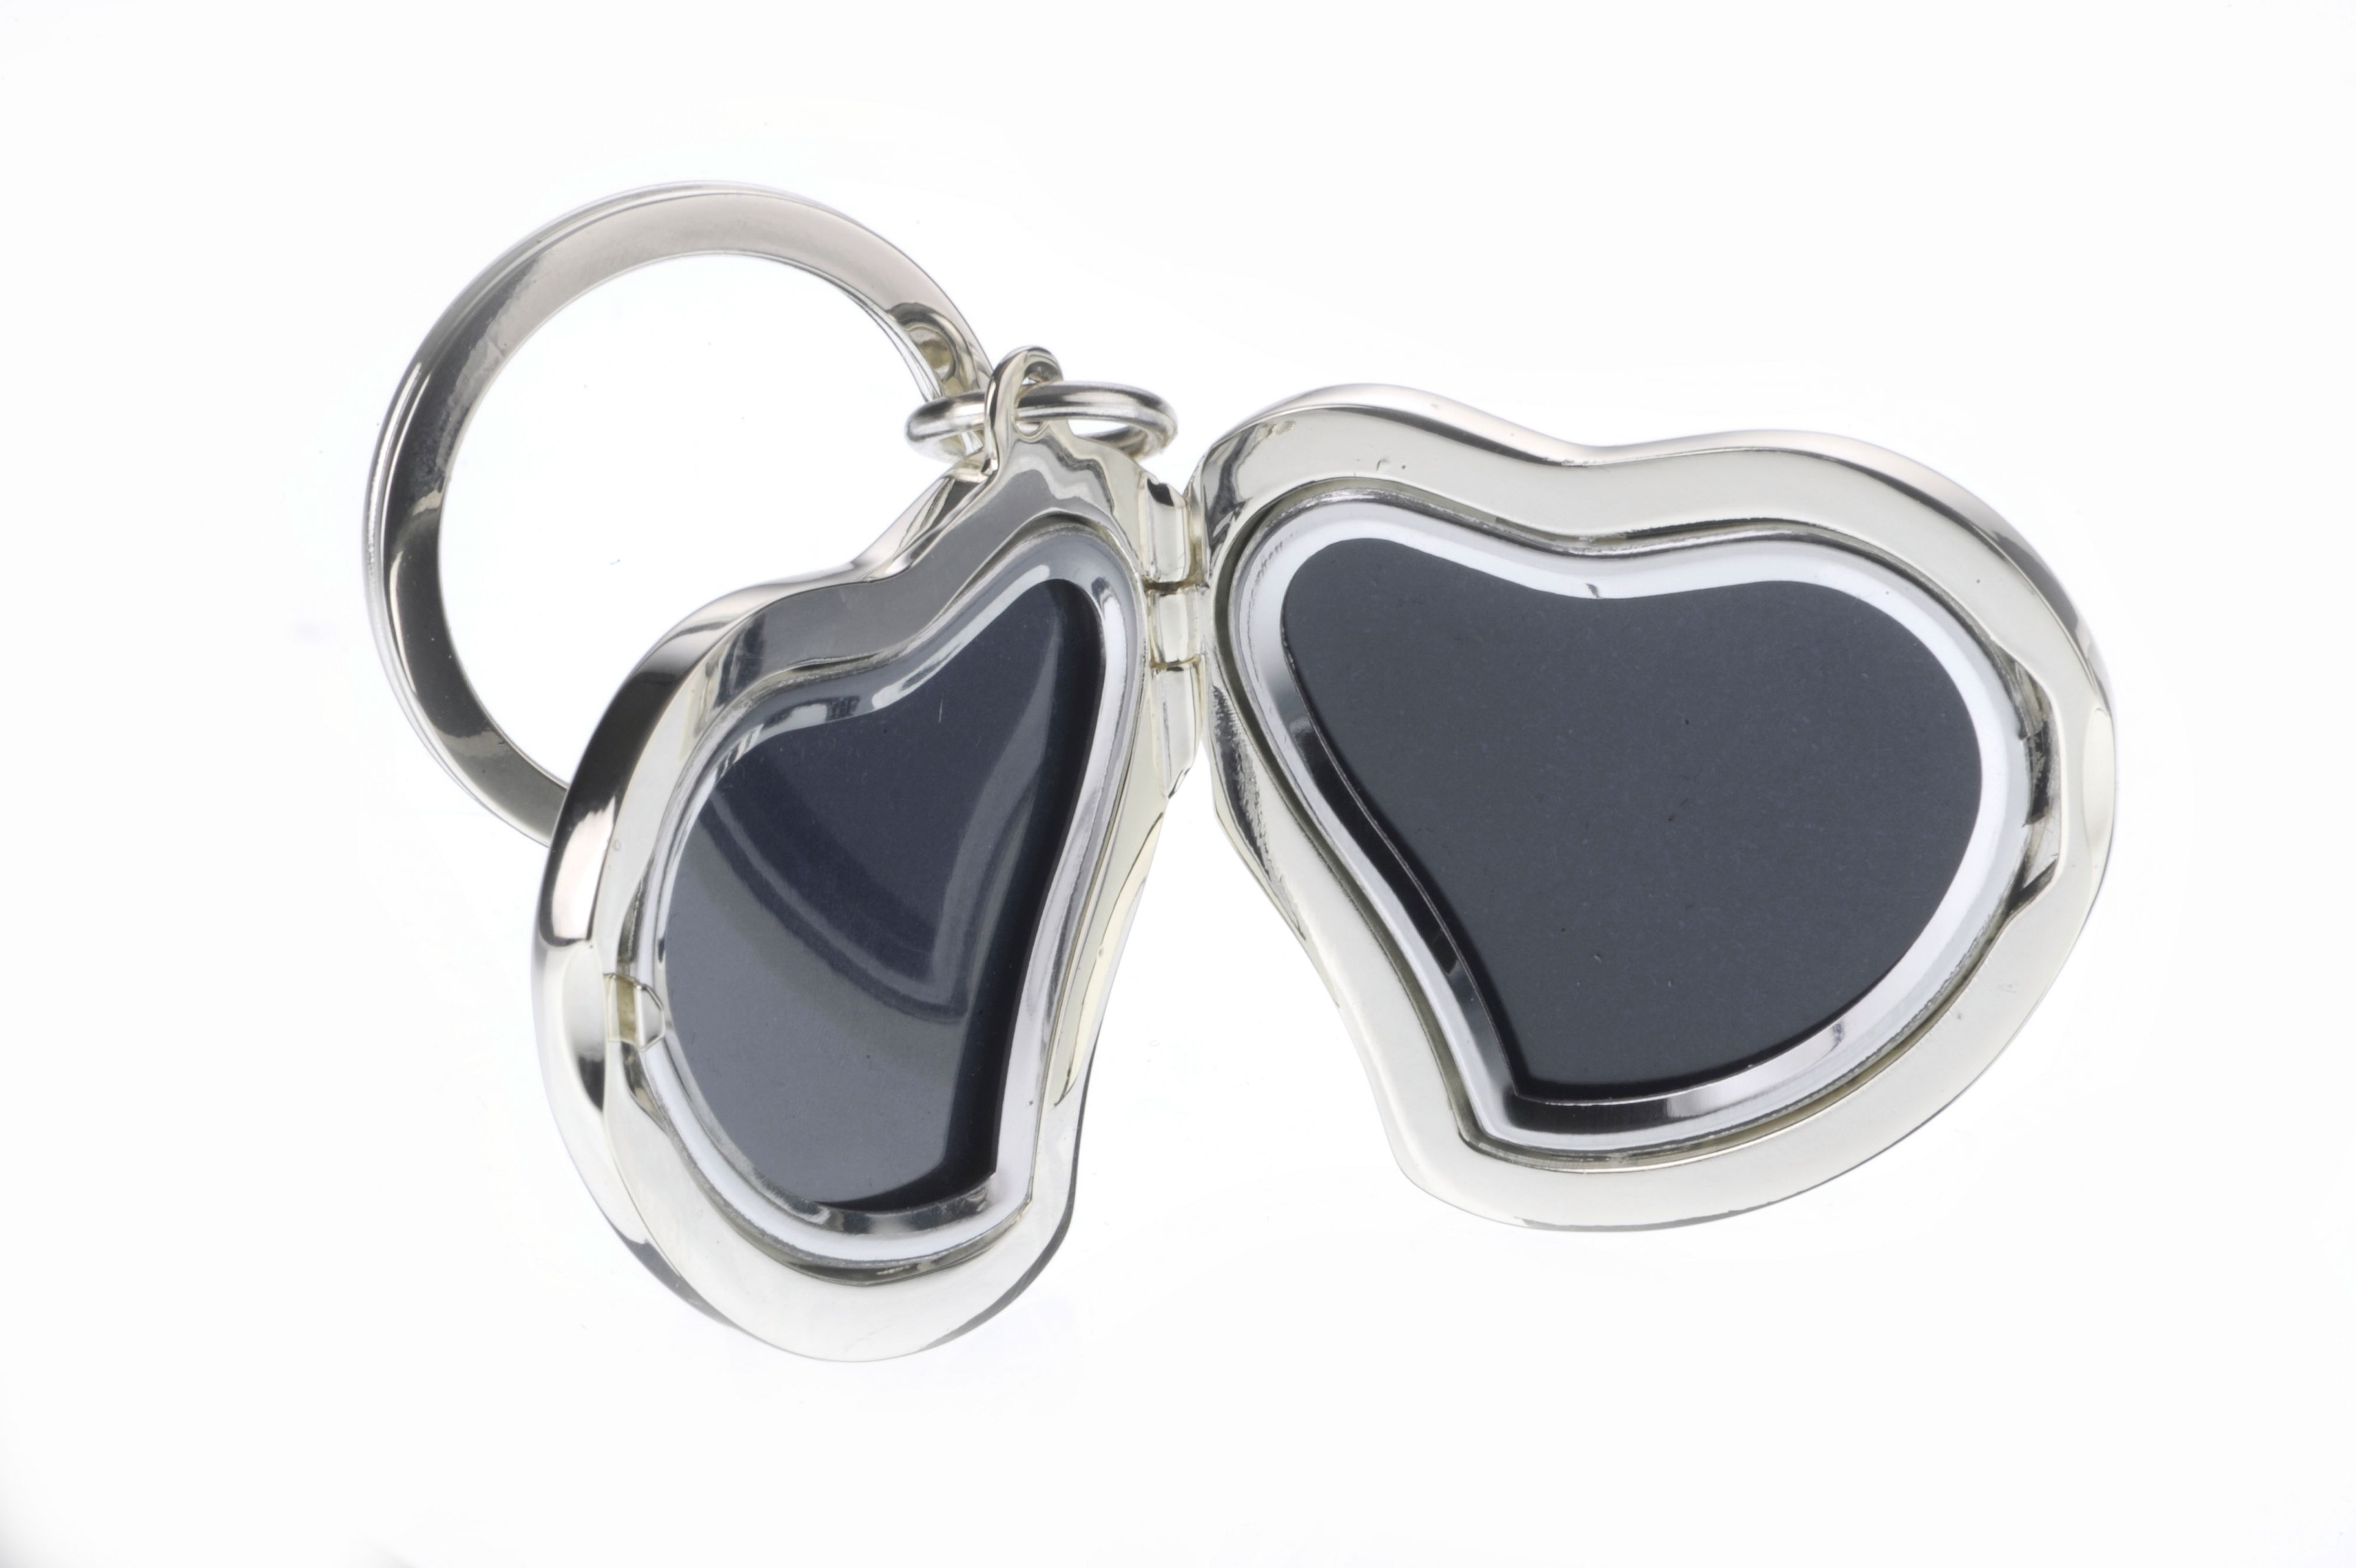 Heart shaped photograph keyring for 2 photos